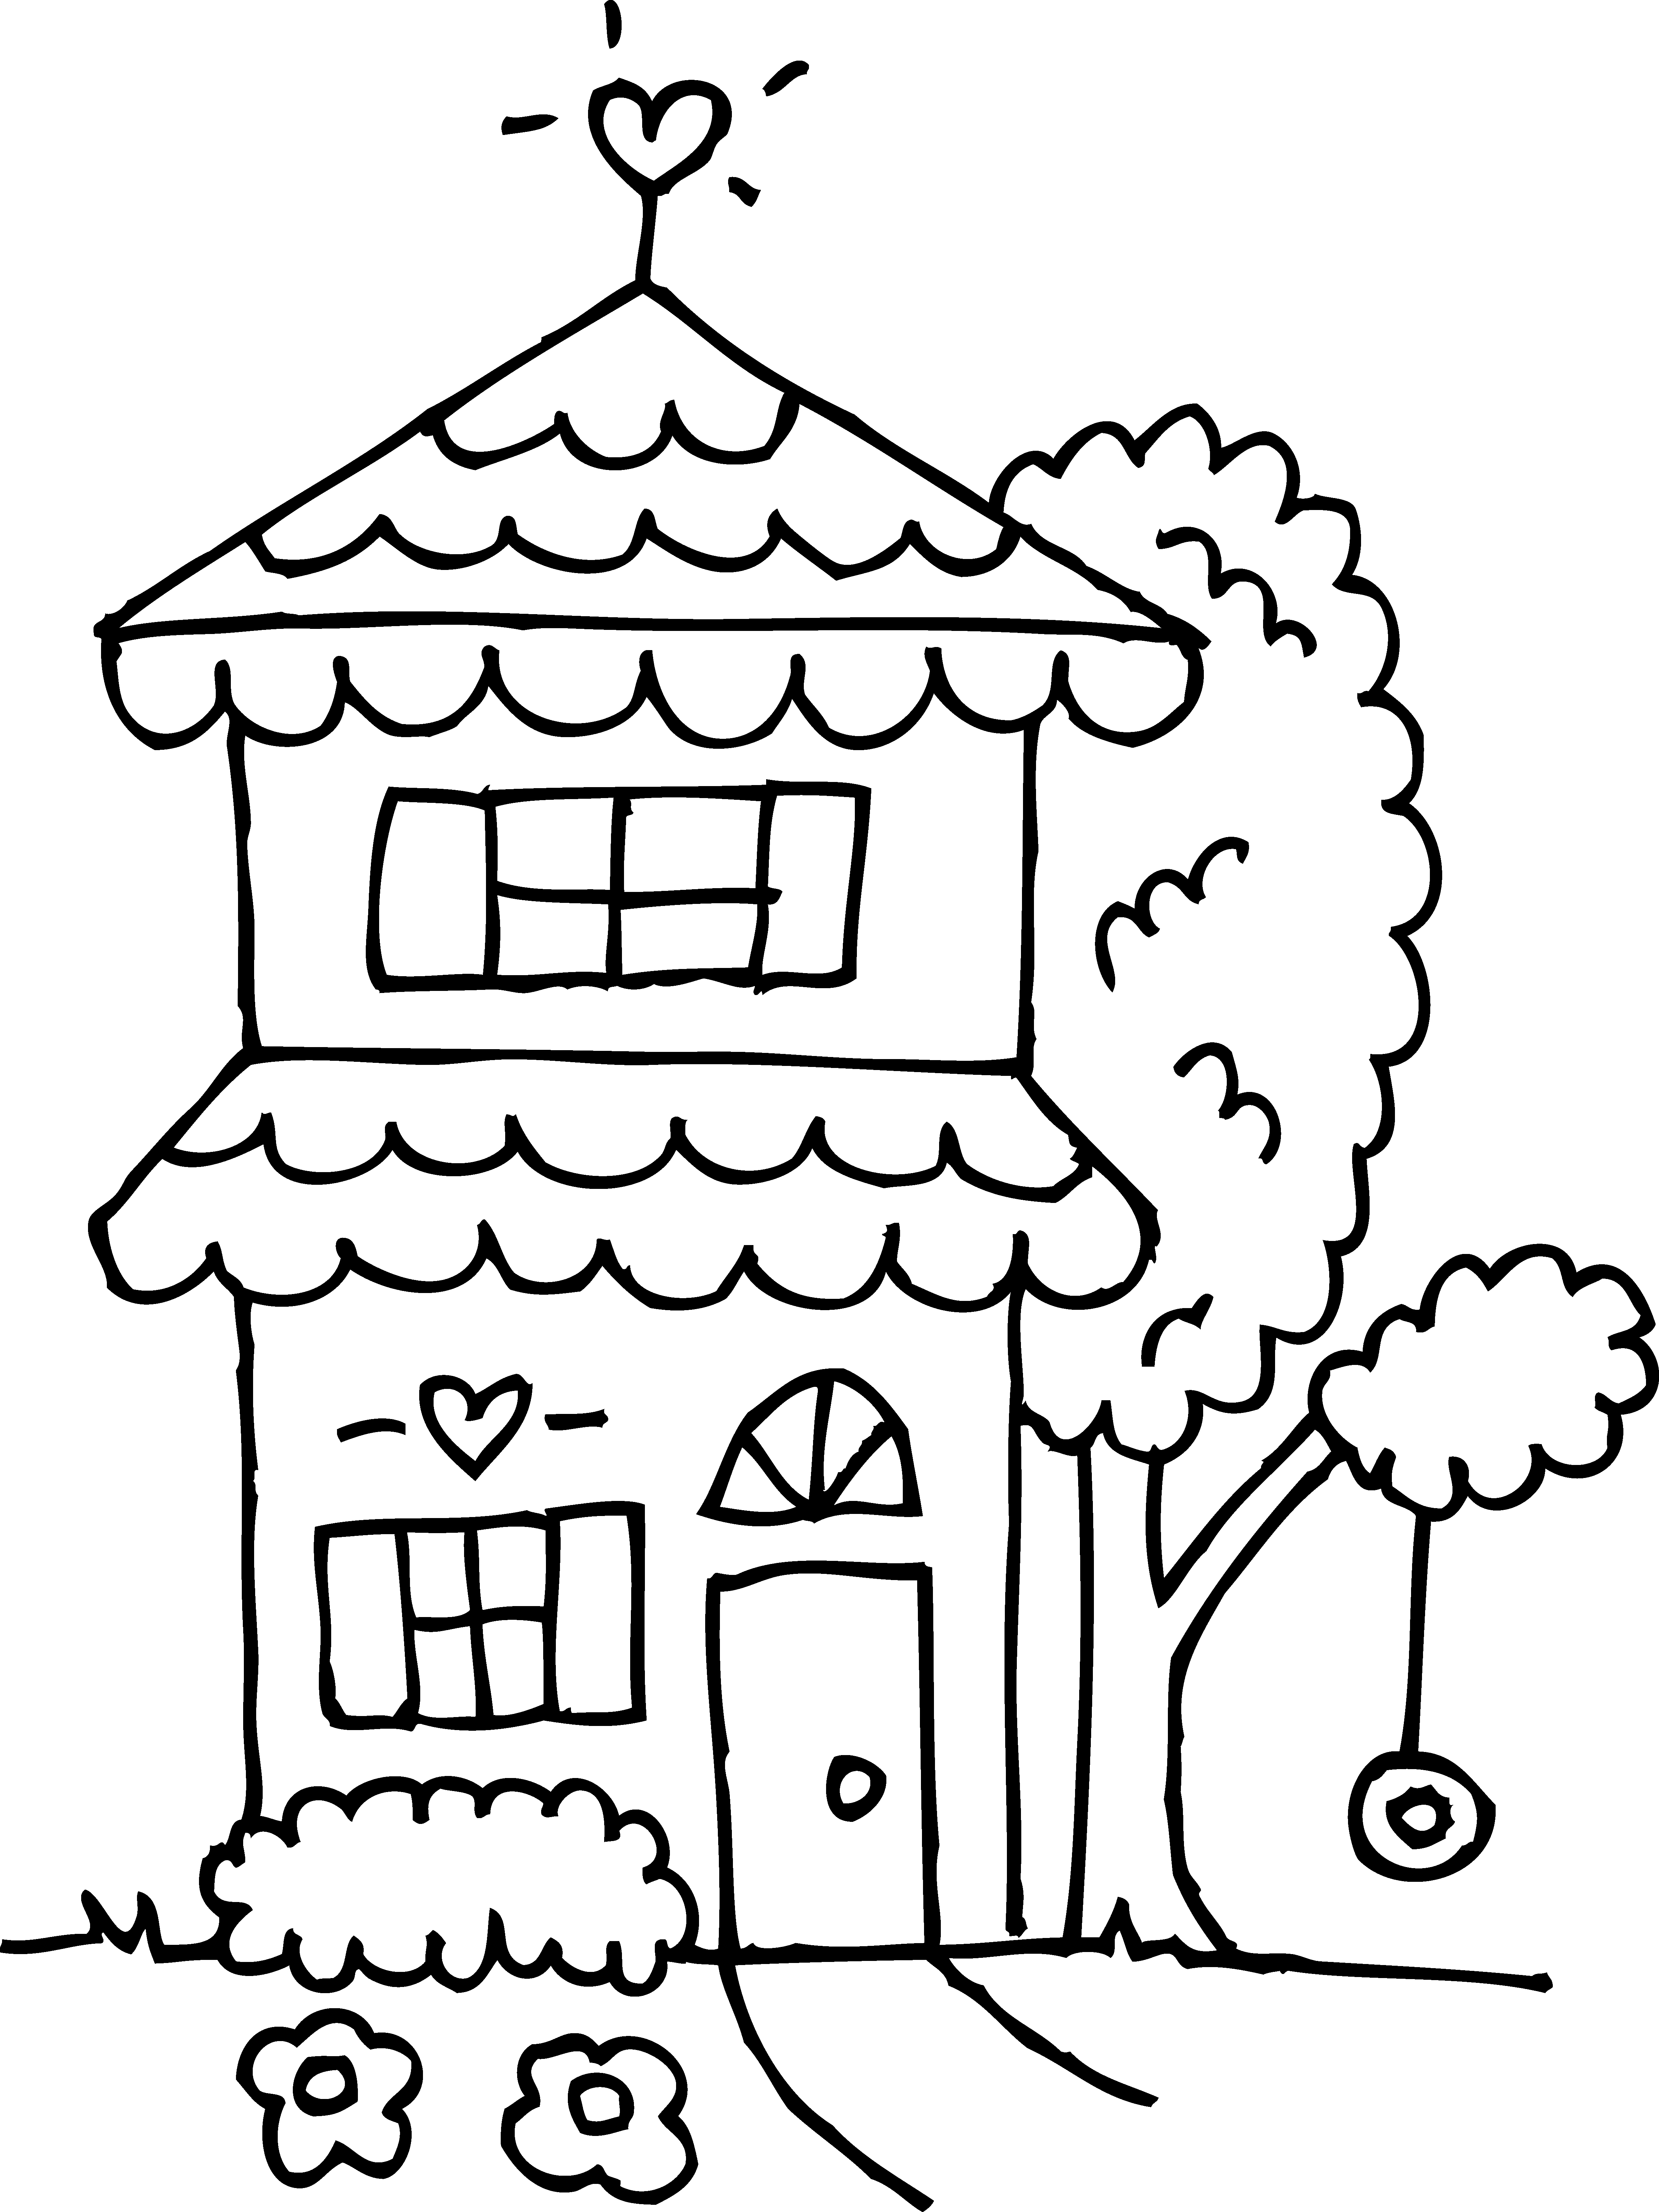 coloring house pictures architecture village roofs architecture adult coloring pages pictures house coloring